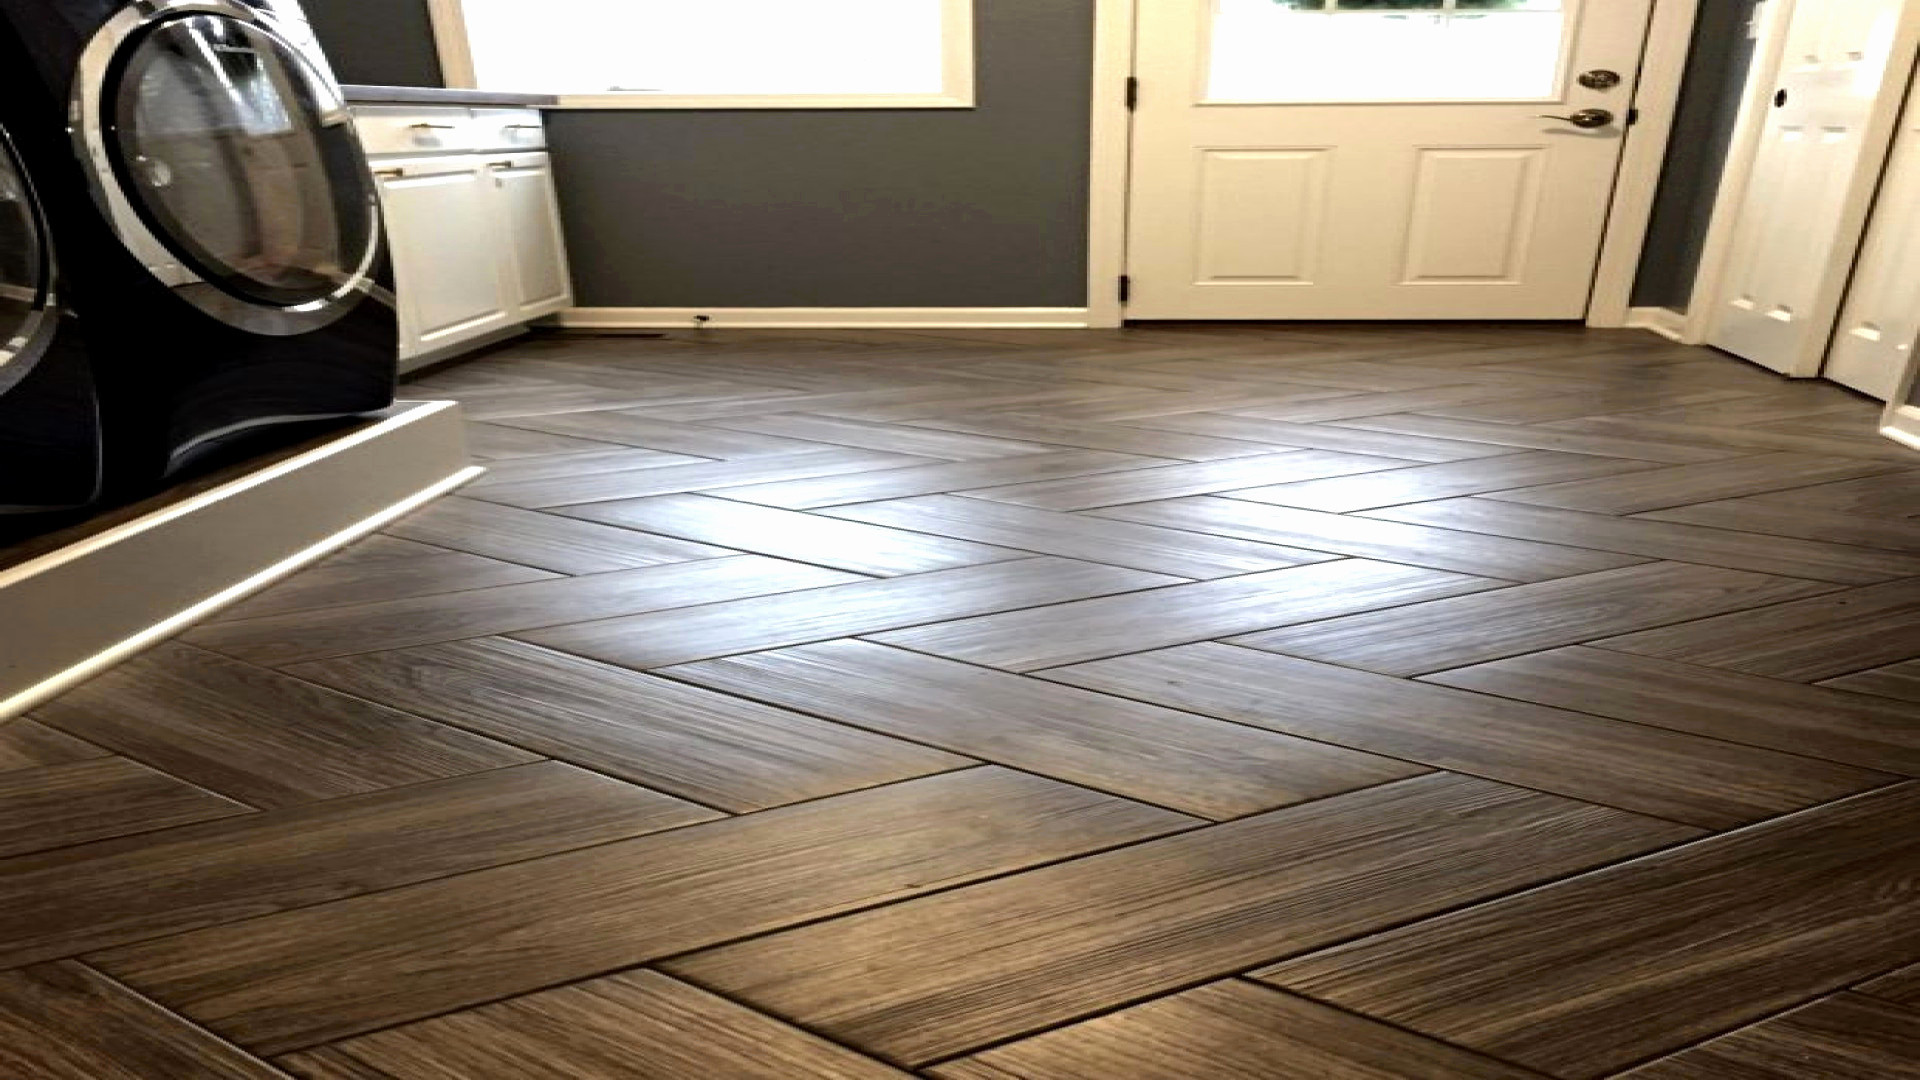 ceramic tile vs hardwood flooring of wood tile kitchen athomeforhire com with wood tile kitchen astonishing wood tile kitchen in addition to wood tile astonishing tile kitchen